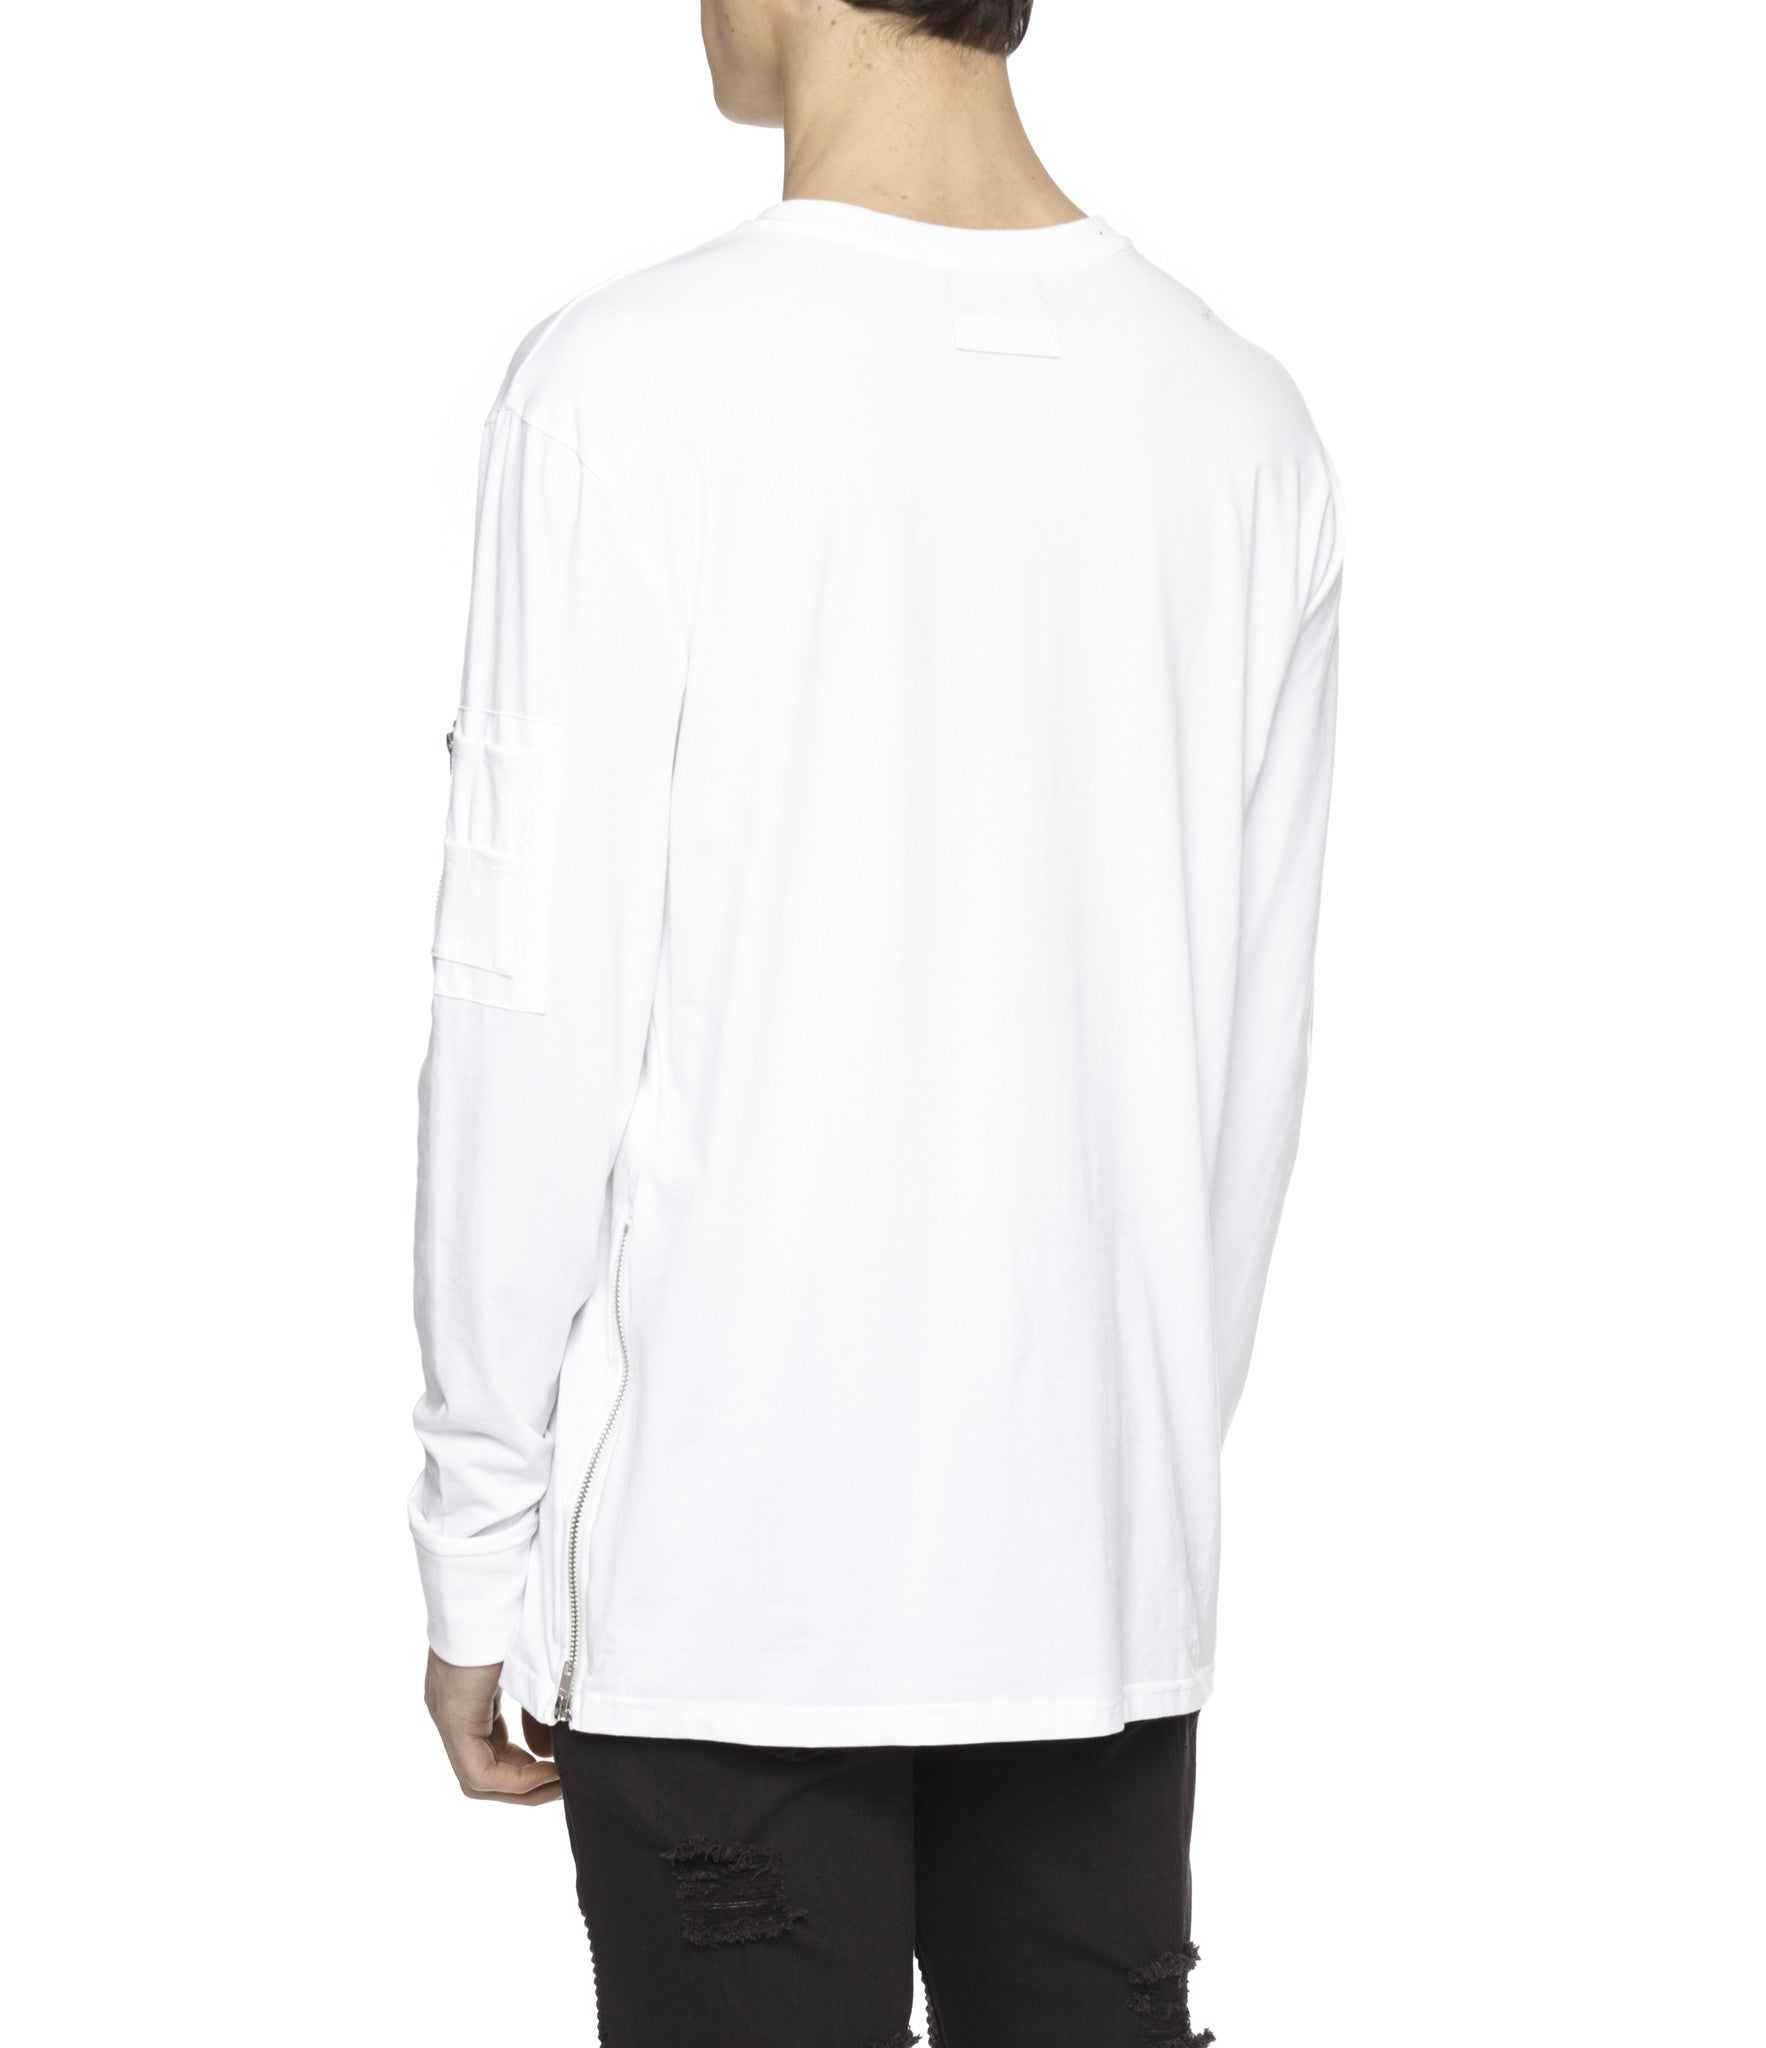 LS303 Utility Long-Sleeve Tee - White - underated london - underatedco - 6